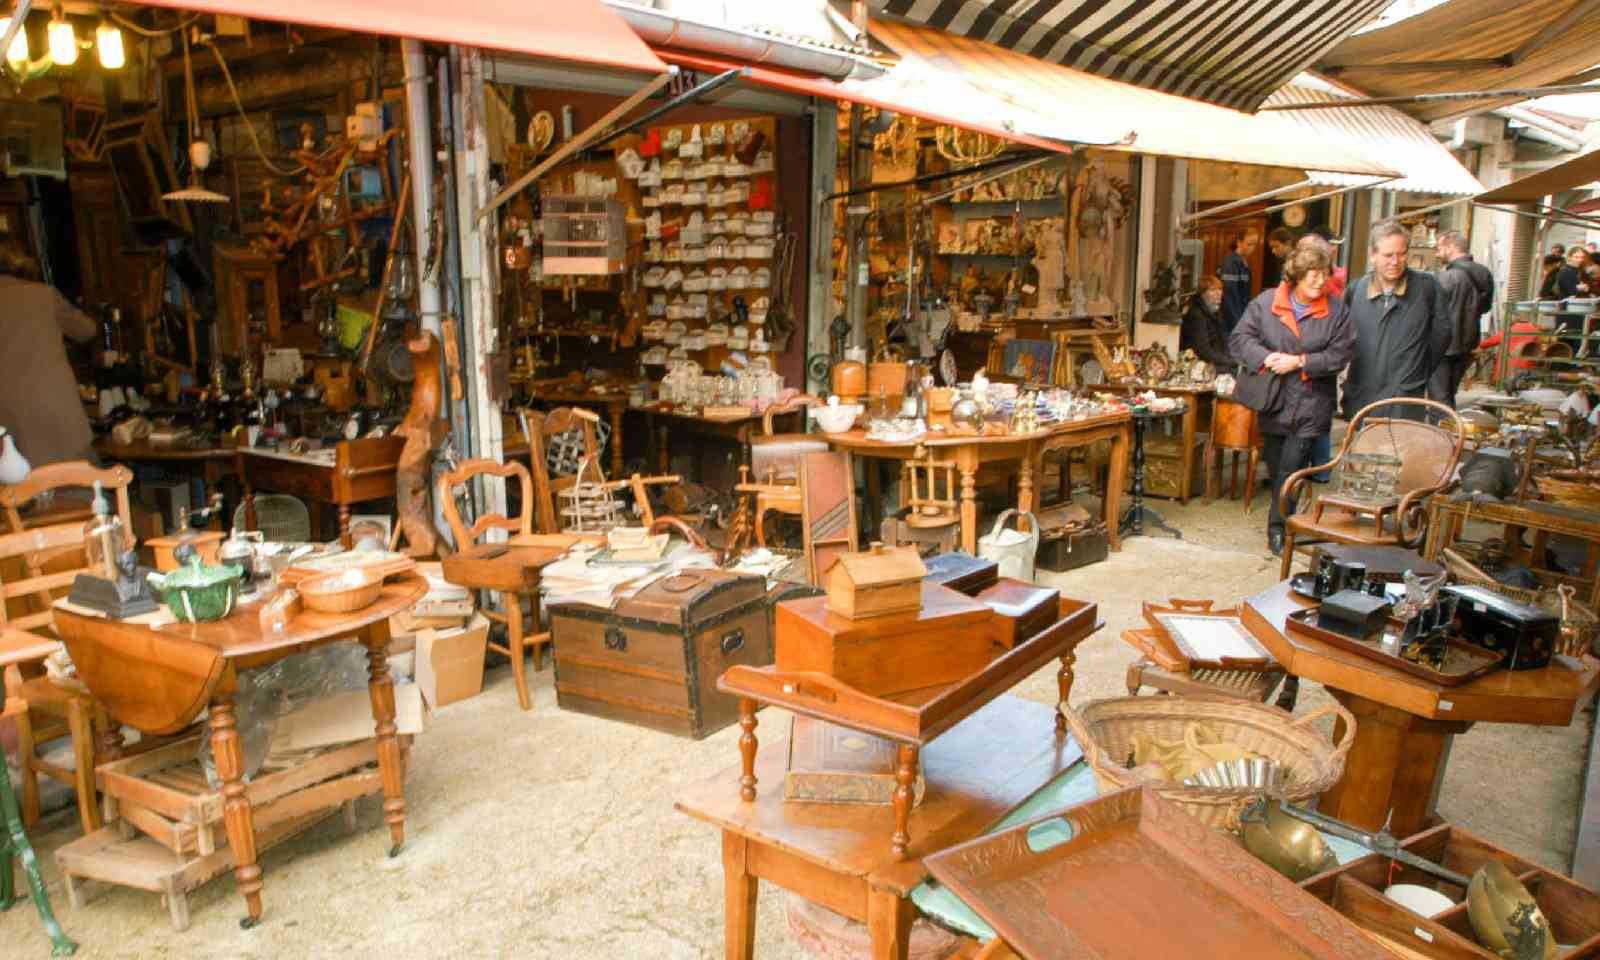 Flea market shopping in Paris (Shutterstock)